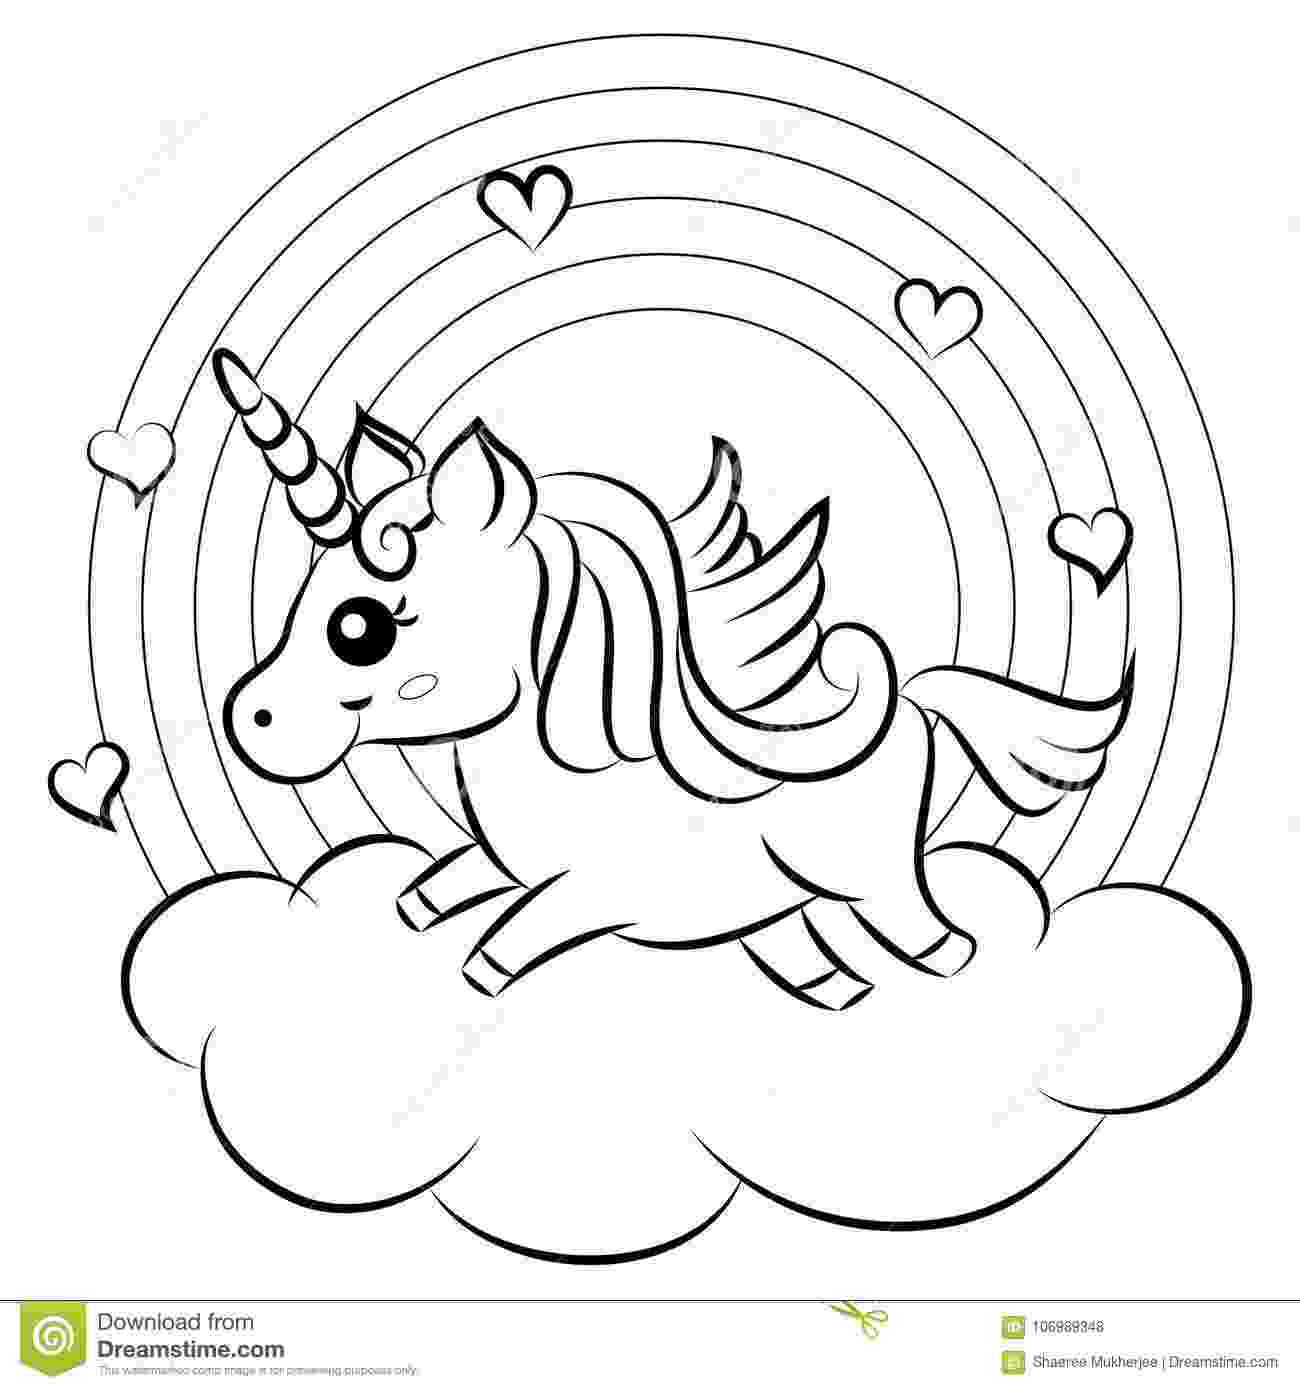 coloring pages unicorns rainbows 9 rainbow coloring pages jpg ai illustrator download pages rainbows unicorns coloring